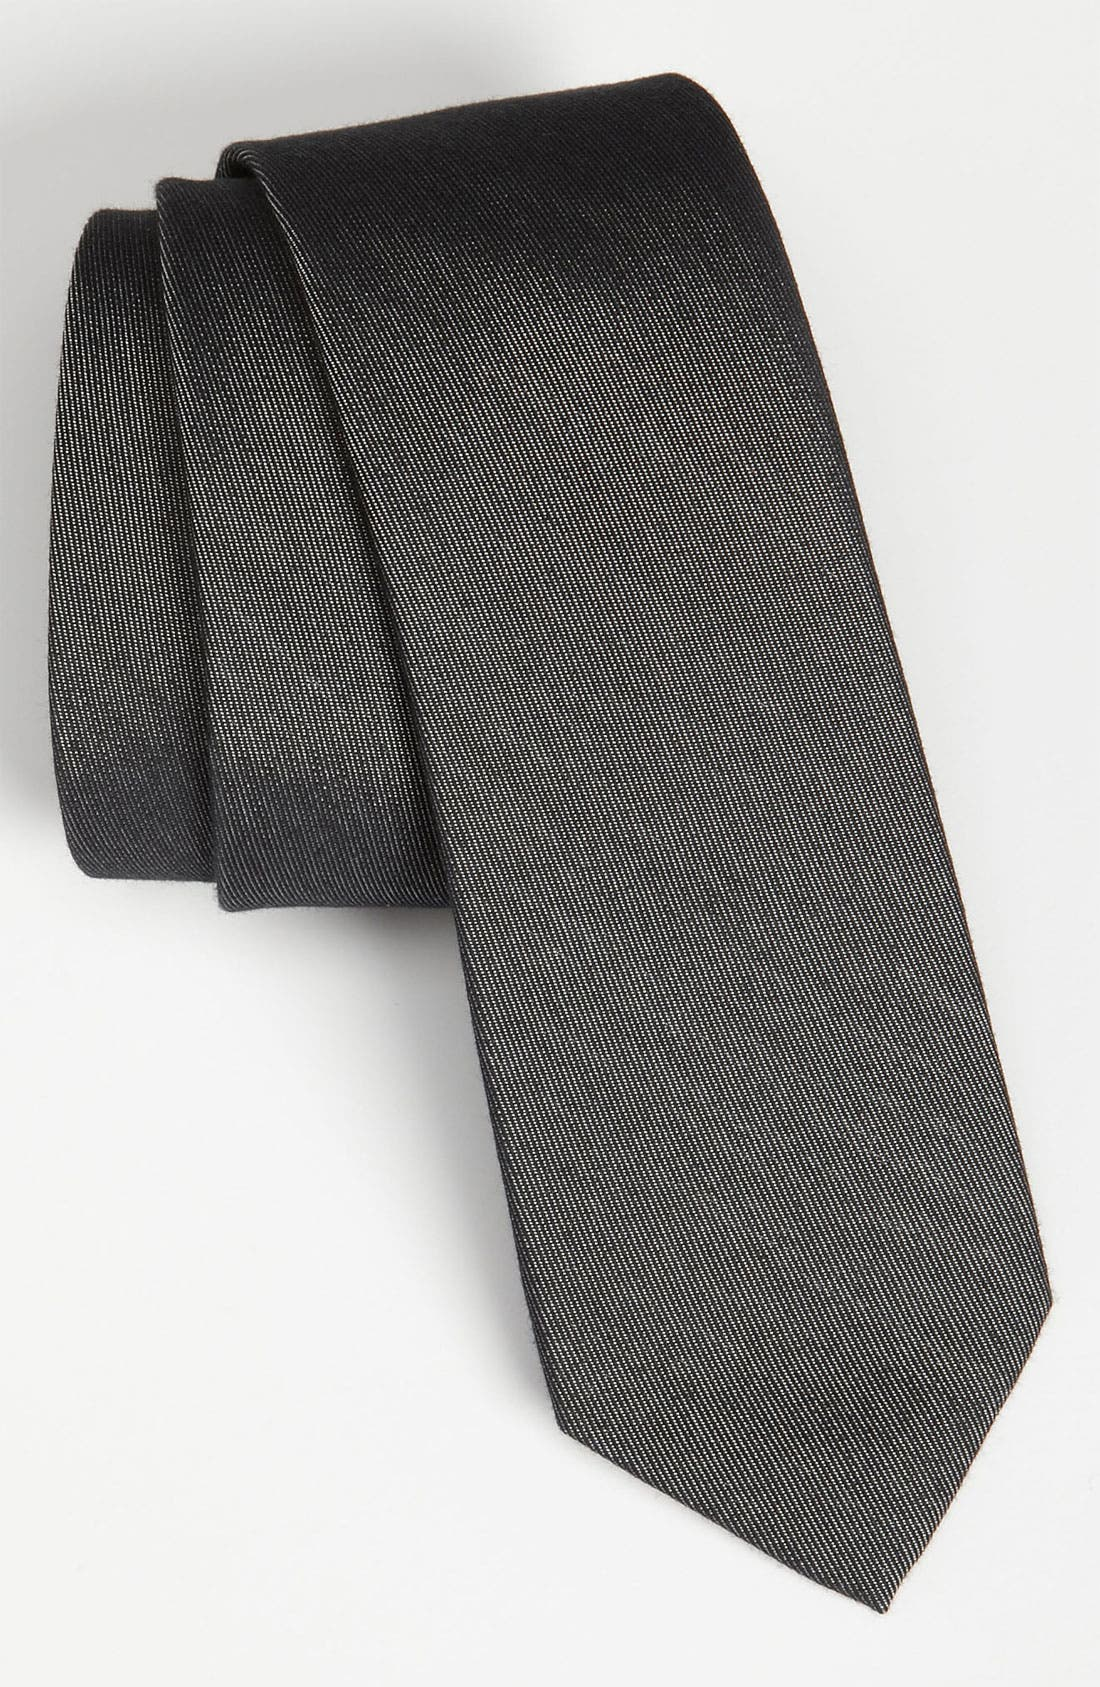 Alternate Image 1 Selected - Public Opinion Woven Tie